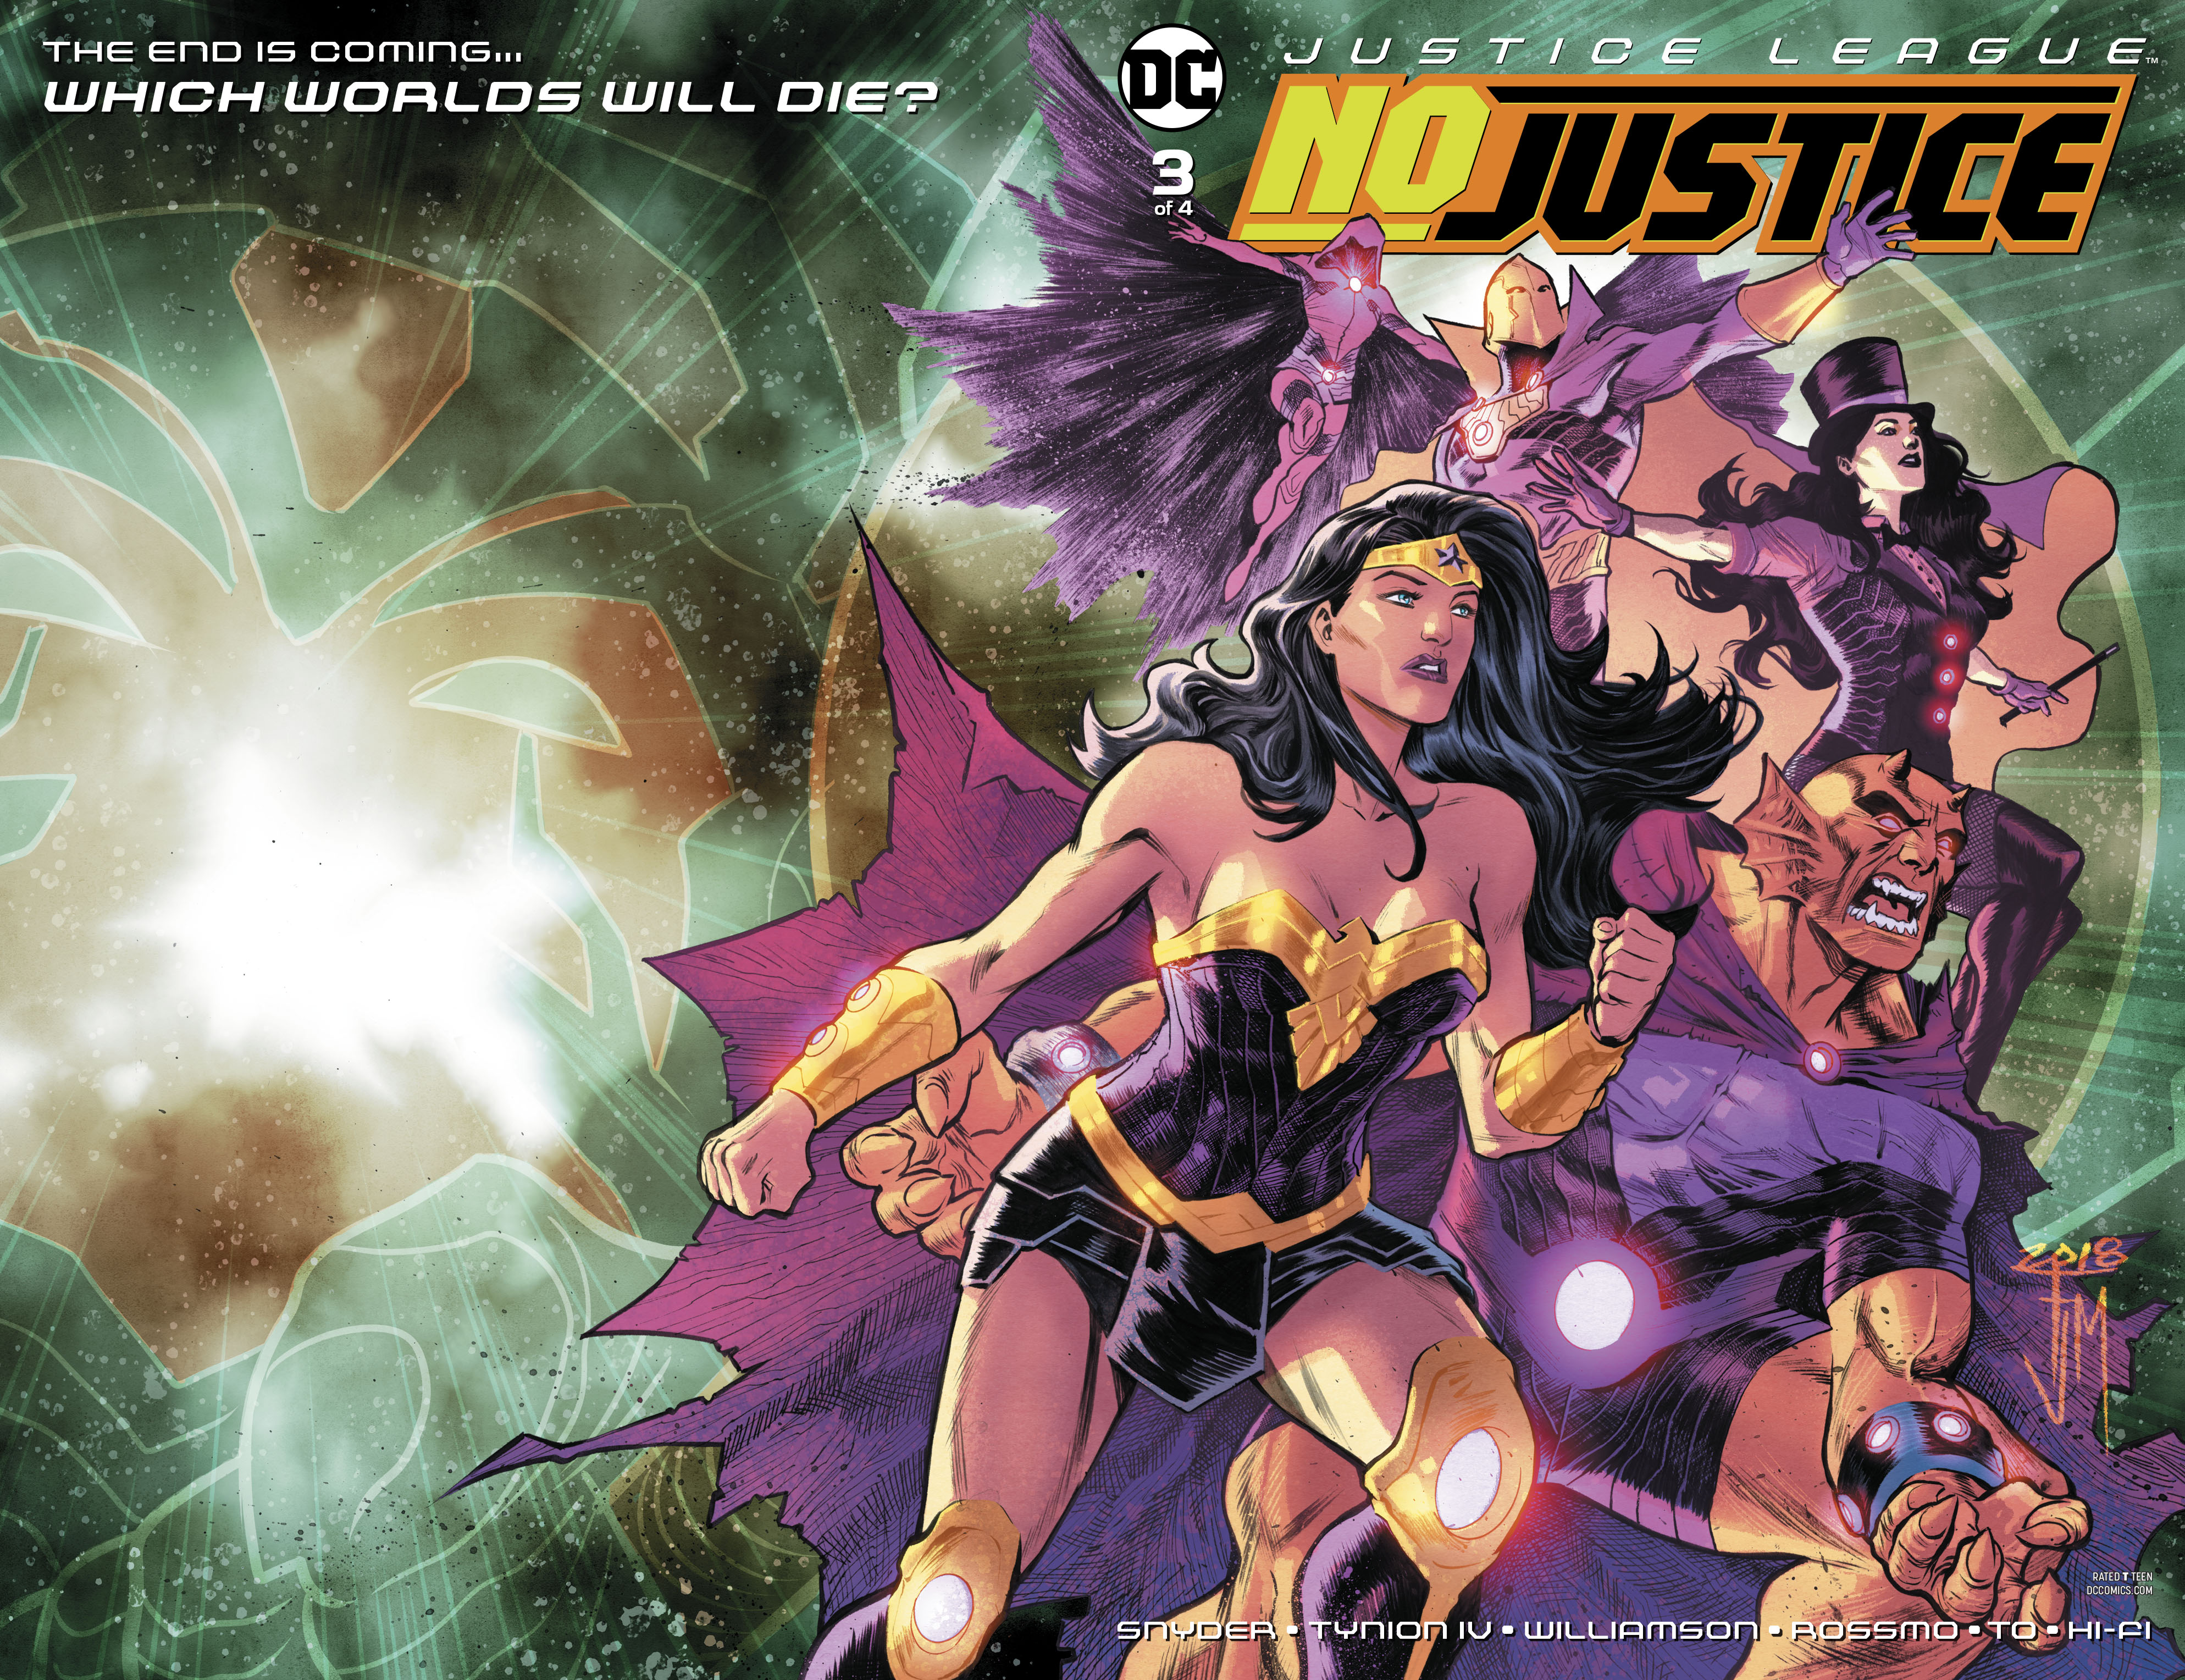 Justice League: No Justice #3